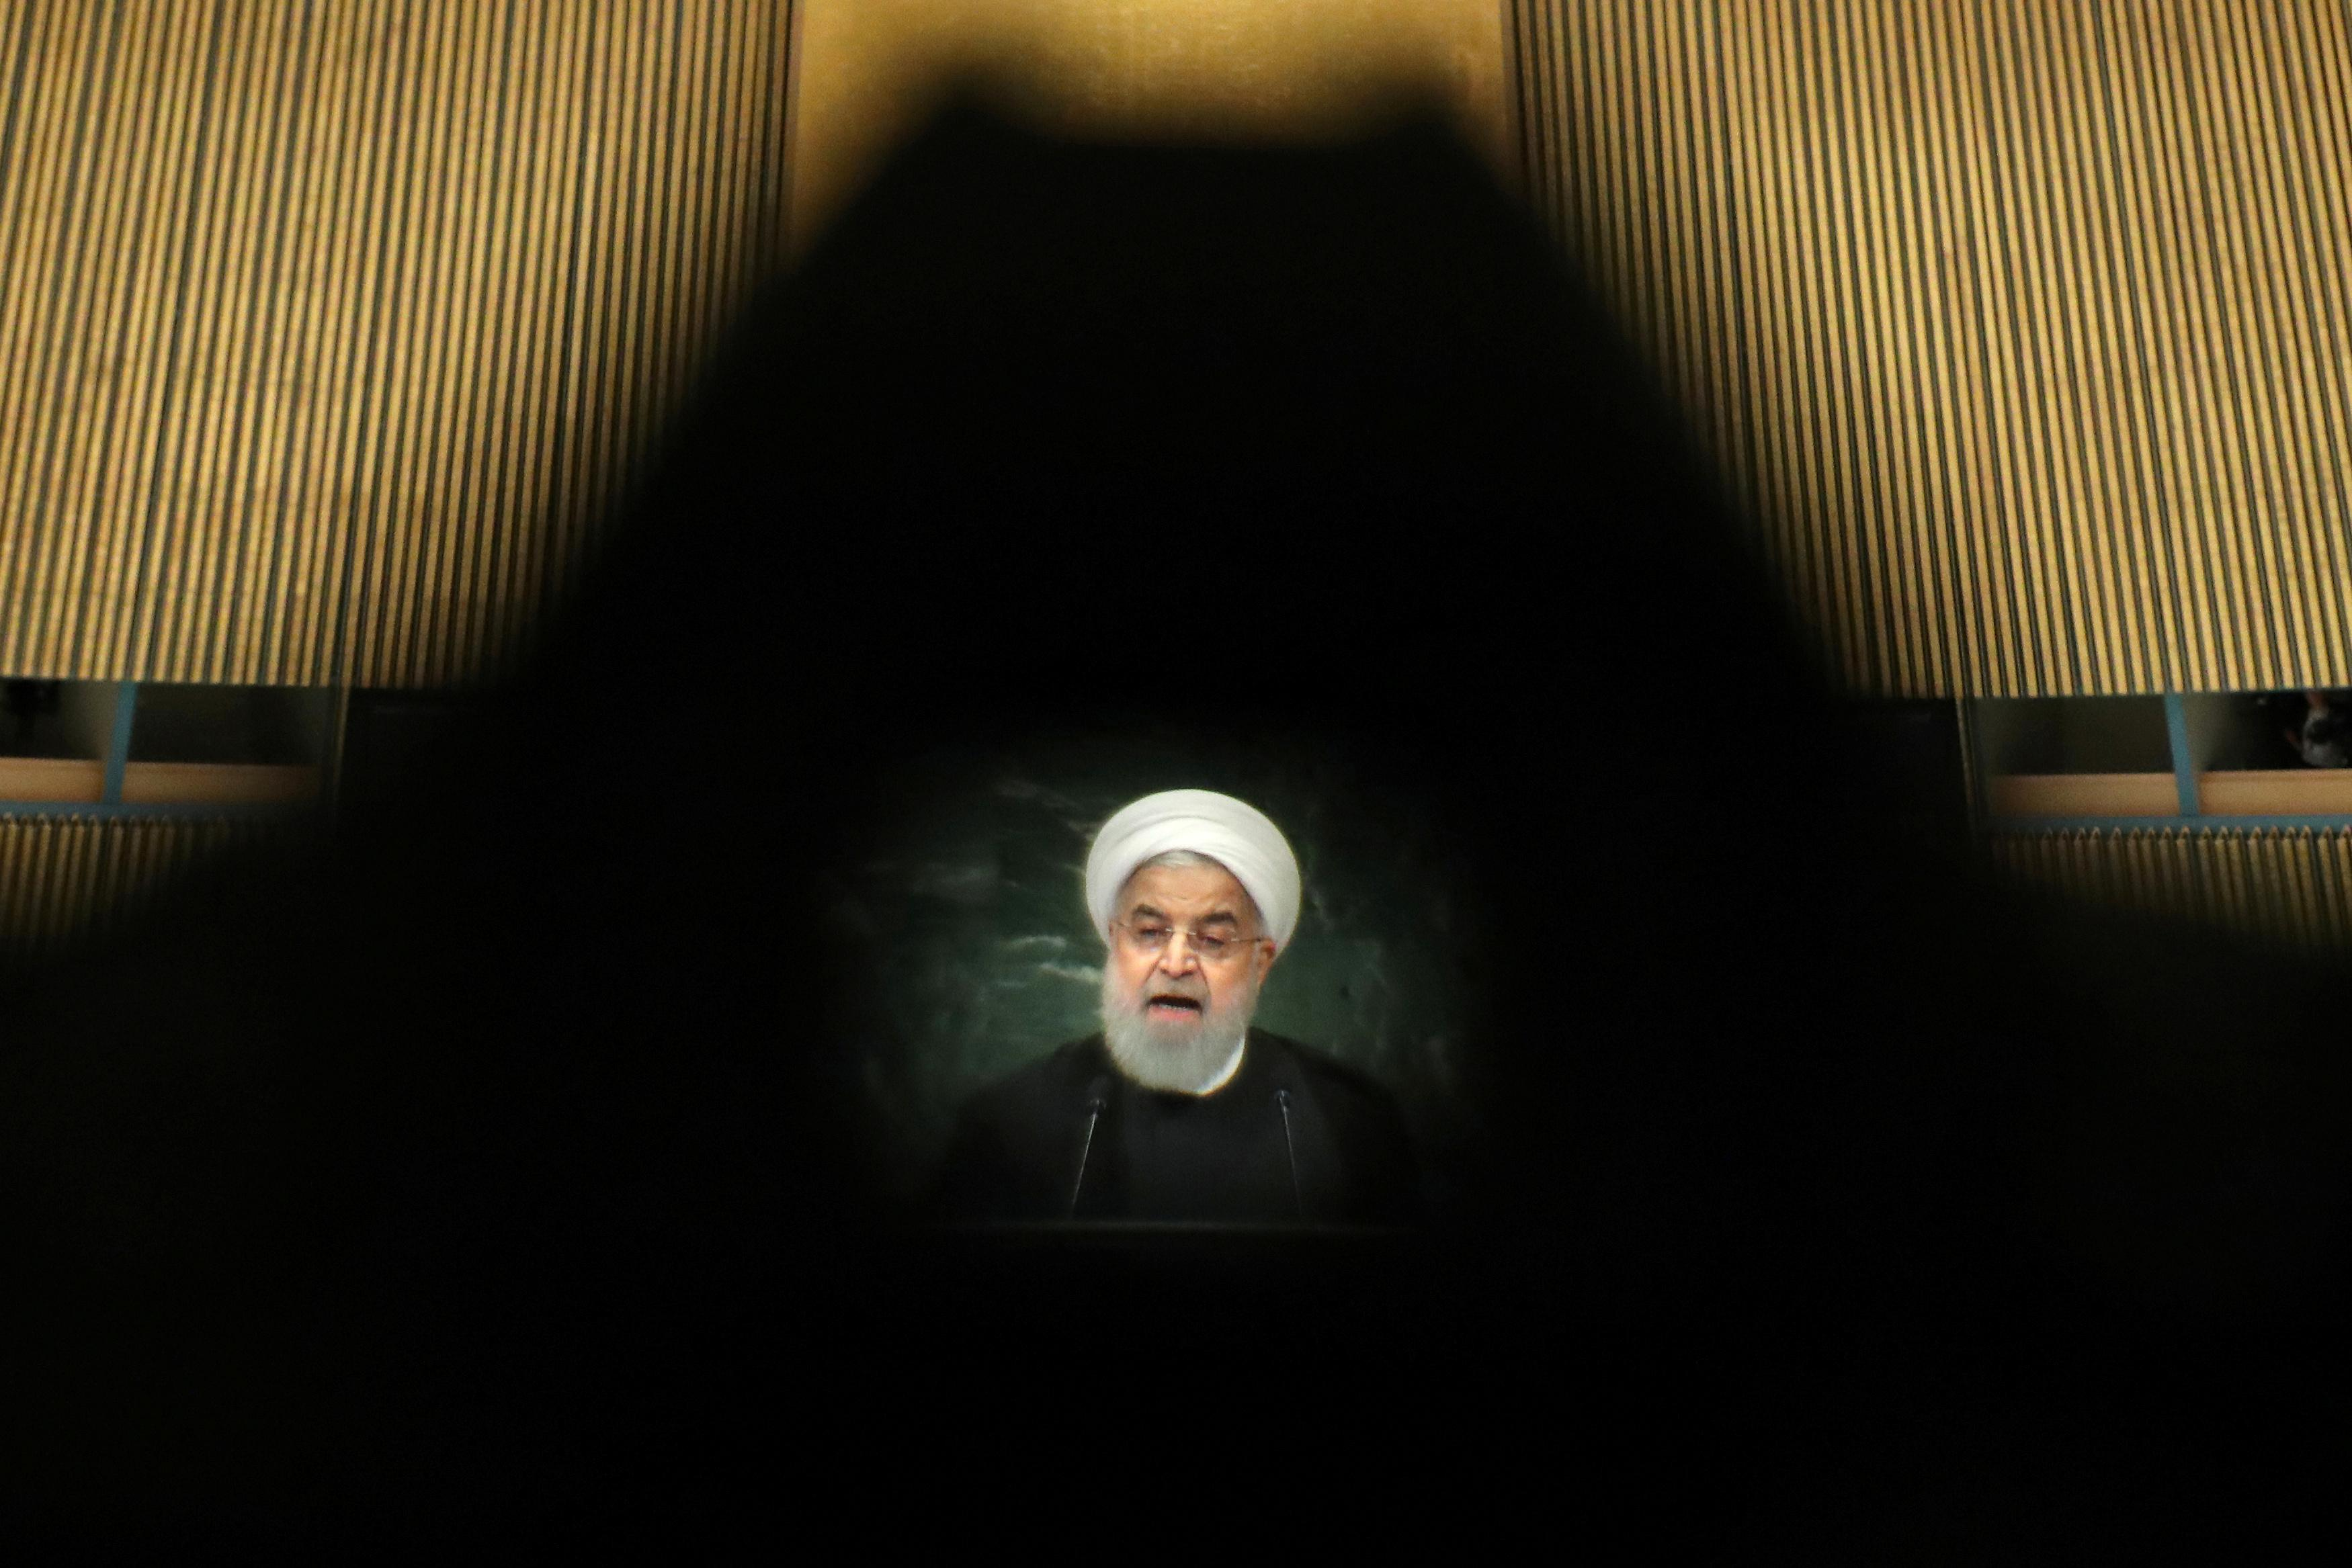 U.S. to fire off new sanctions over Iran - source